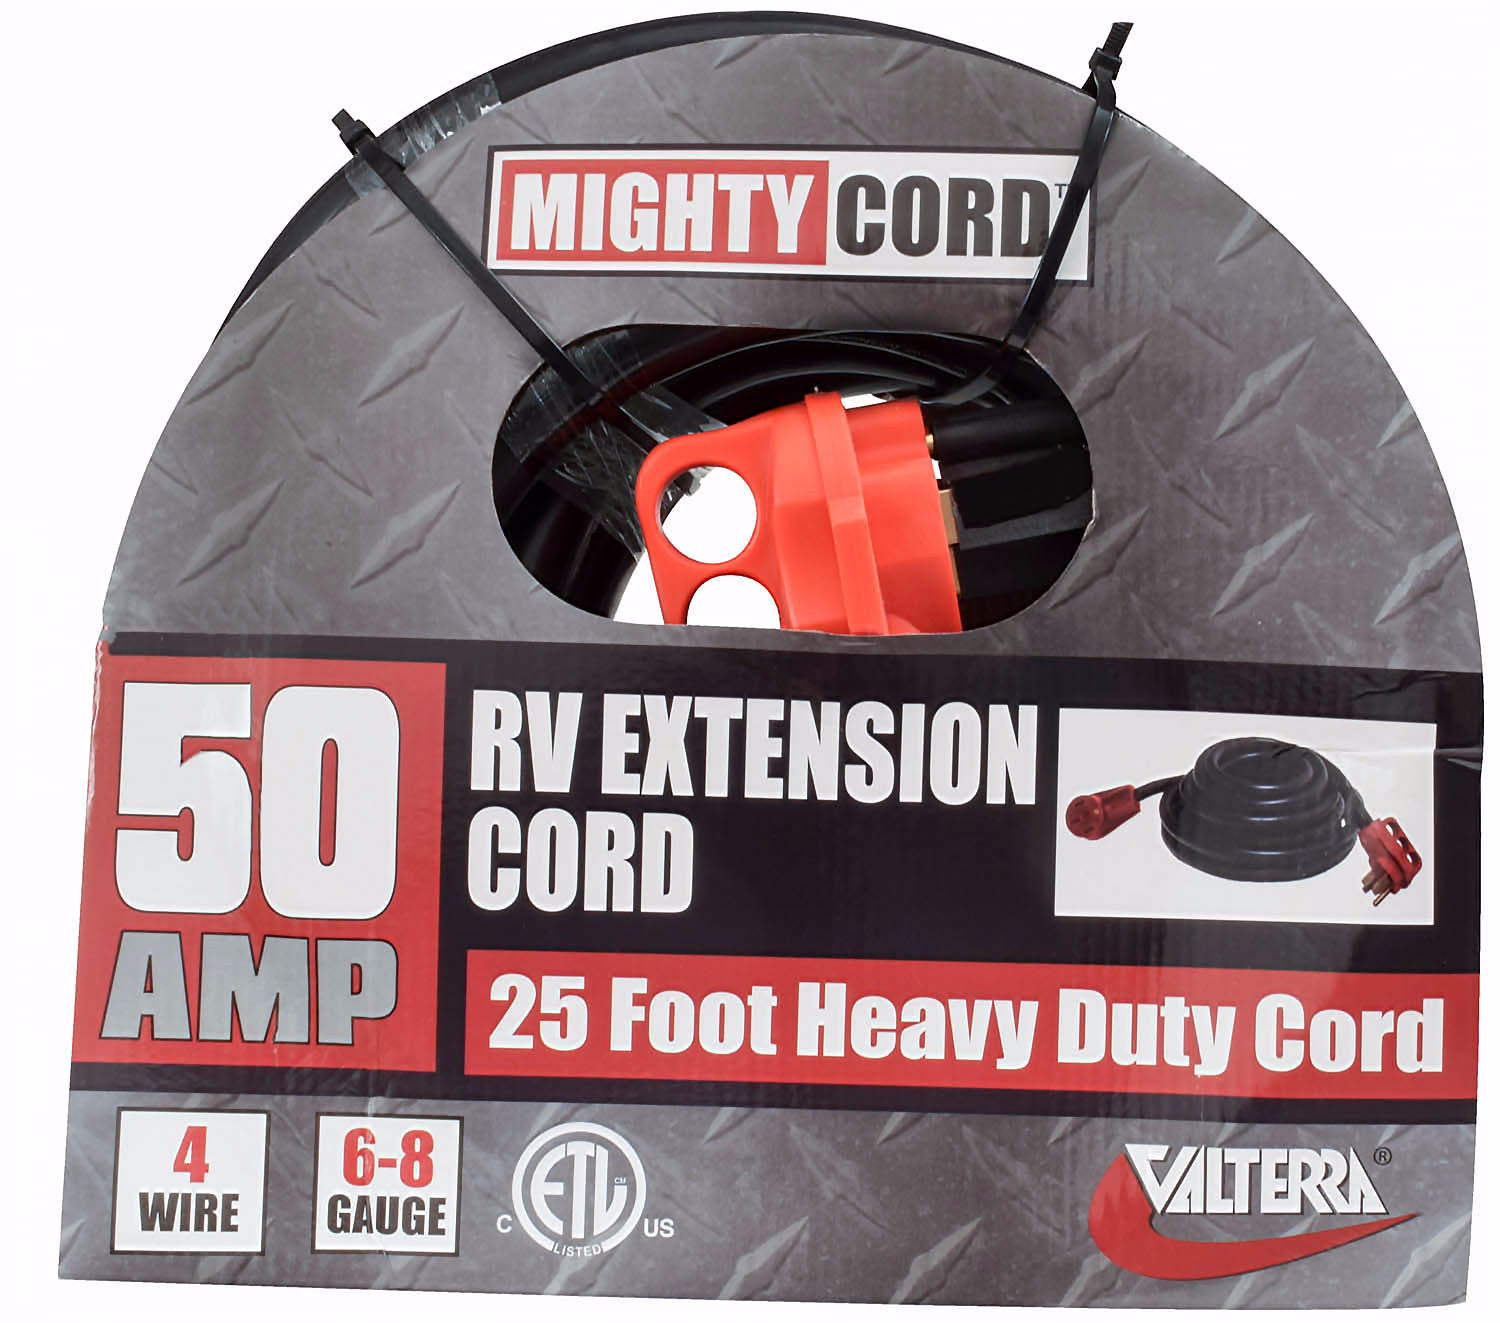 RV Extension Cord - 50 Amp 25 foot A10-5025EH – United RV